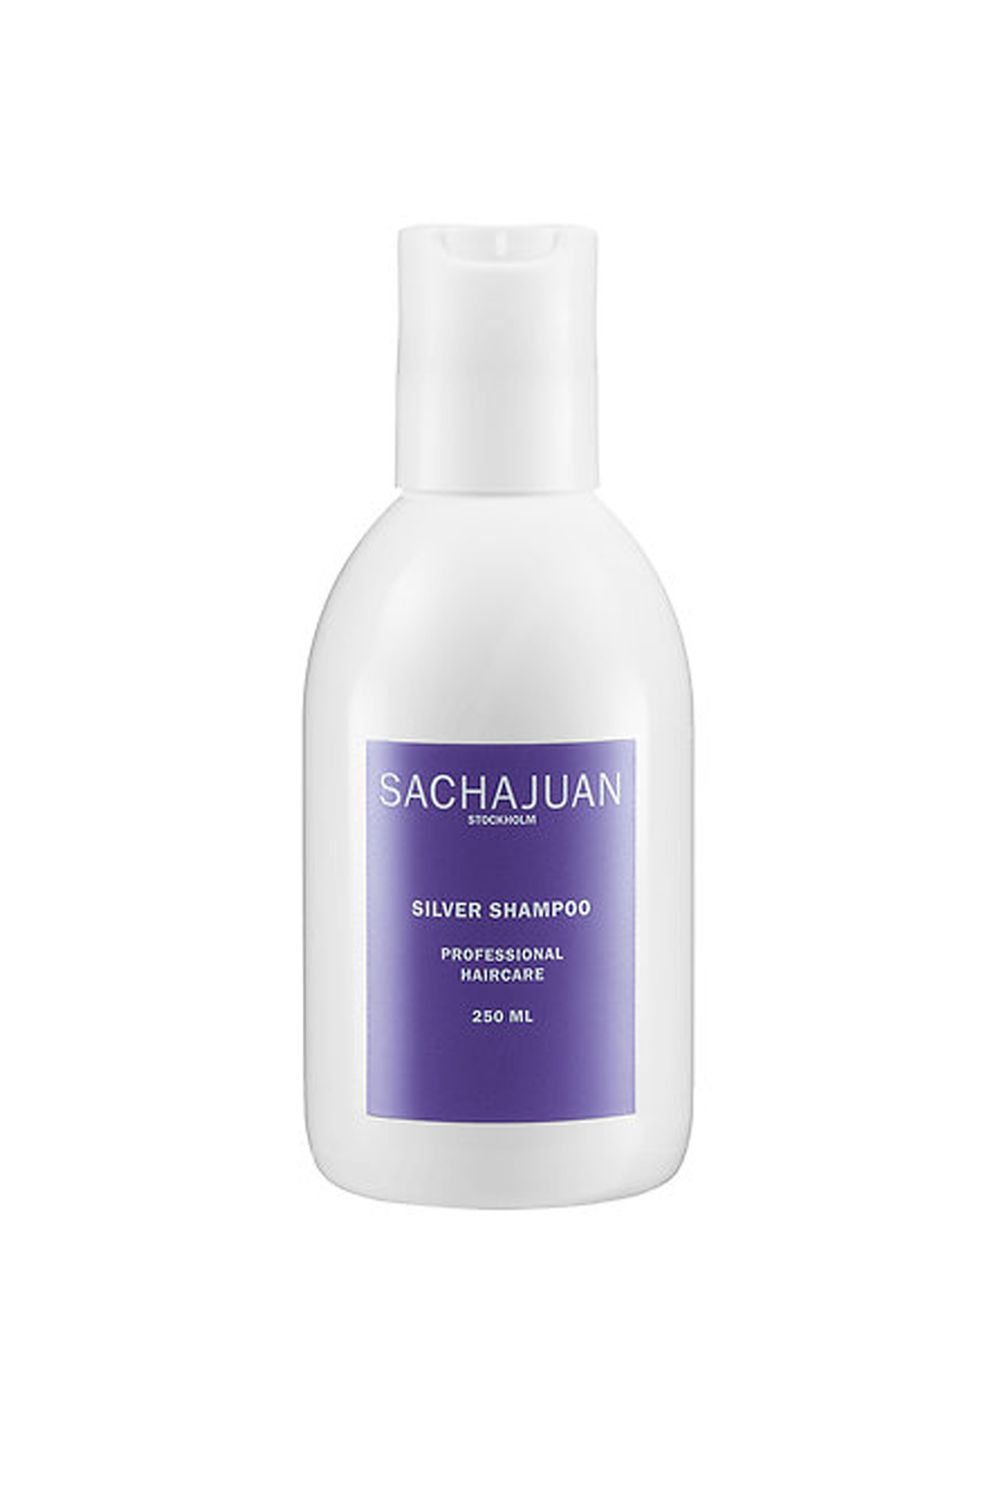 """<p>Has purple pigments: You know what that does. Also has UV filters: You know what that does too but are still impressed/<a href=""""http://www.marieclaire.com/beauty/news/a20983/summer-hair-damage-tips/"""" target=""""_blank"""" data-tracking-id=""""recirc-text-link"""">worried about your hair needing SPF</a>.</p><p>Sachajuan Silver Shampoo, $31, <a href=""""http://www.sephora.com/silver-shampoo-P378304?skuId=1851765&icid2=products%20grid:p378304"""" target=""""_blank"""" data-tracking-id=""""recirc-text-link"""">sephora.com</a>.</p>"""